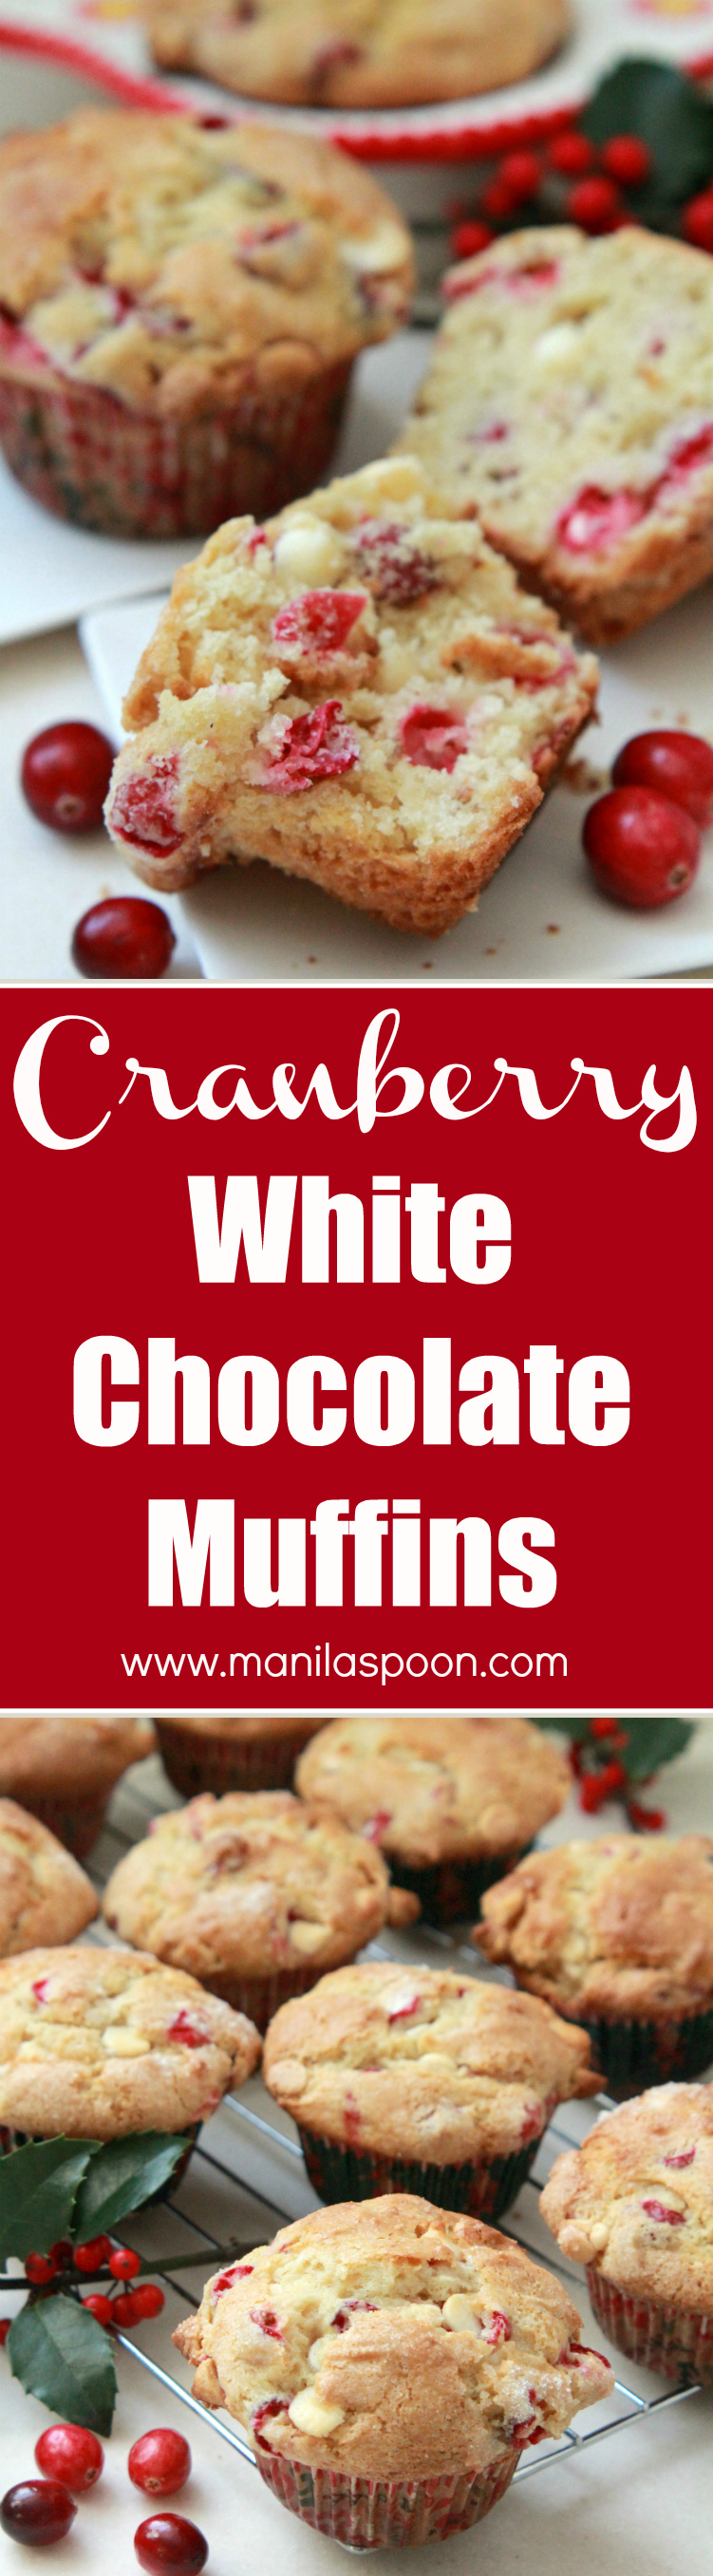 Cranberry White Chocolate Muffins - Manila Spoon